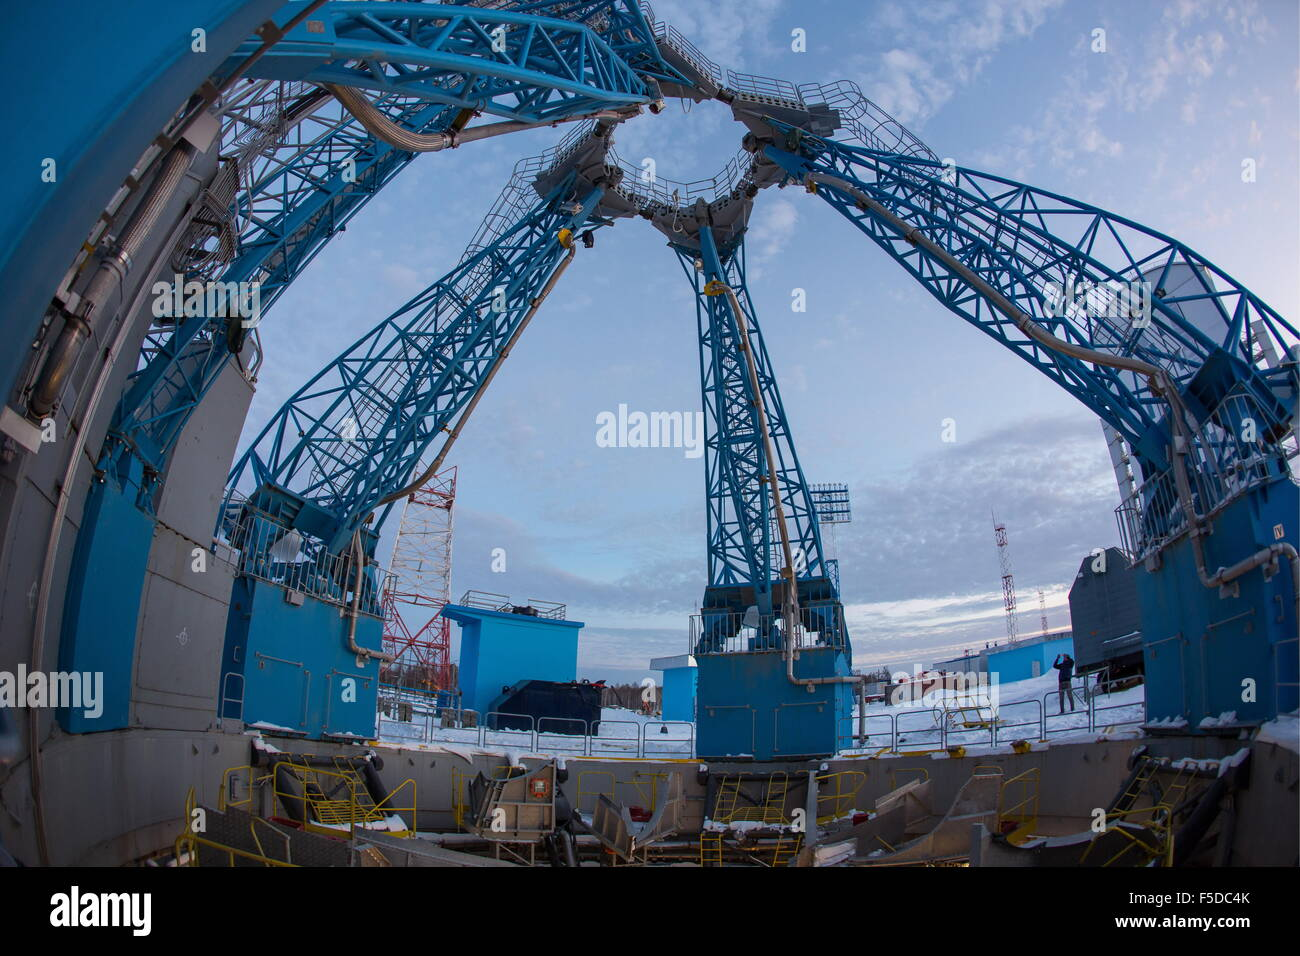 Amur Region, Russia. 2nd Nov, 2015. Trusses at a launch pad of Russia's Vostochny Cosmodrome. Several corruption - Stock Image